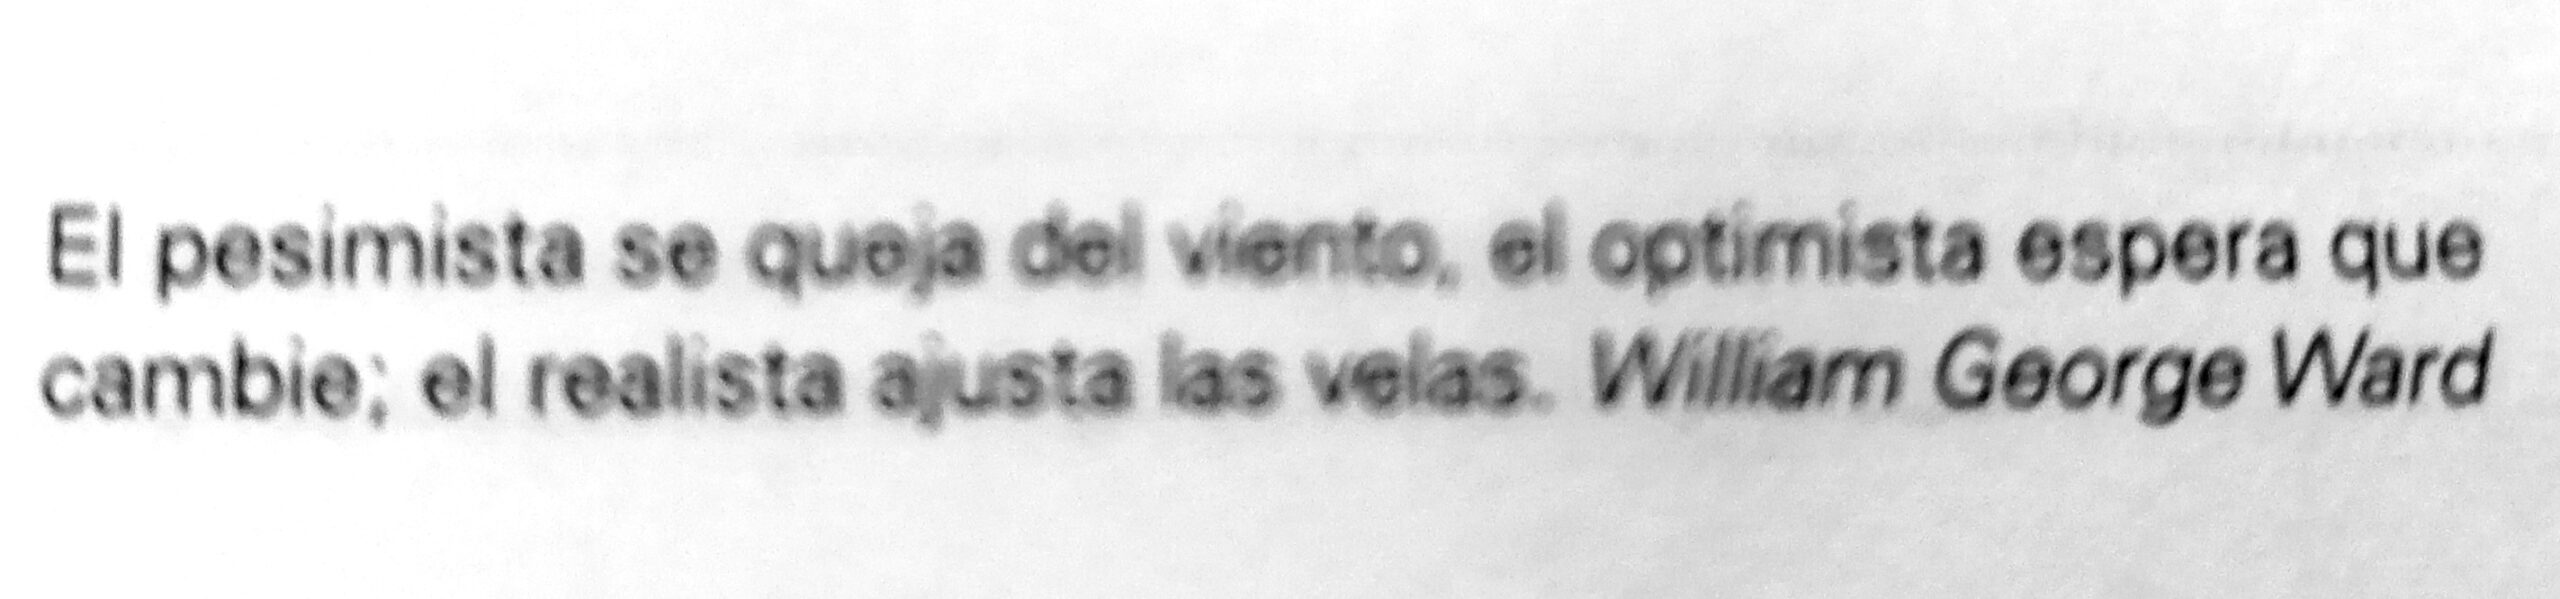 Frase de William George Ward